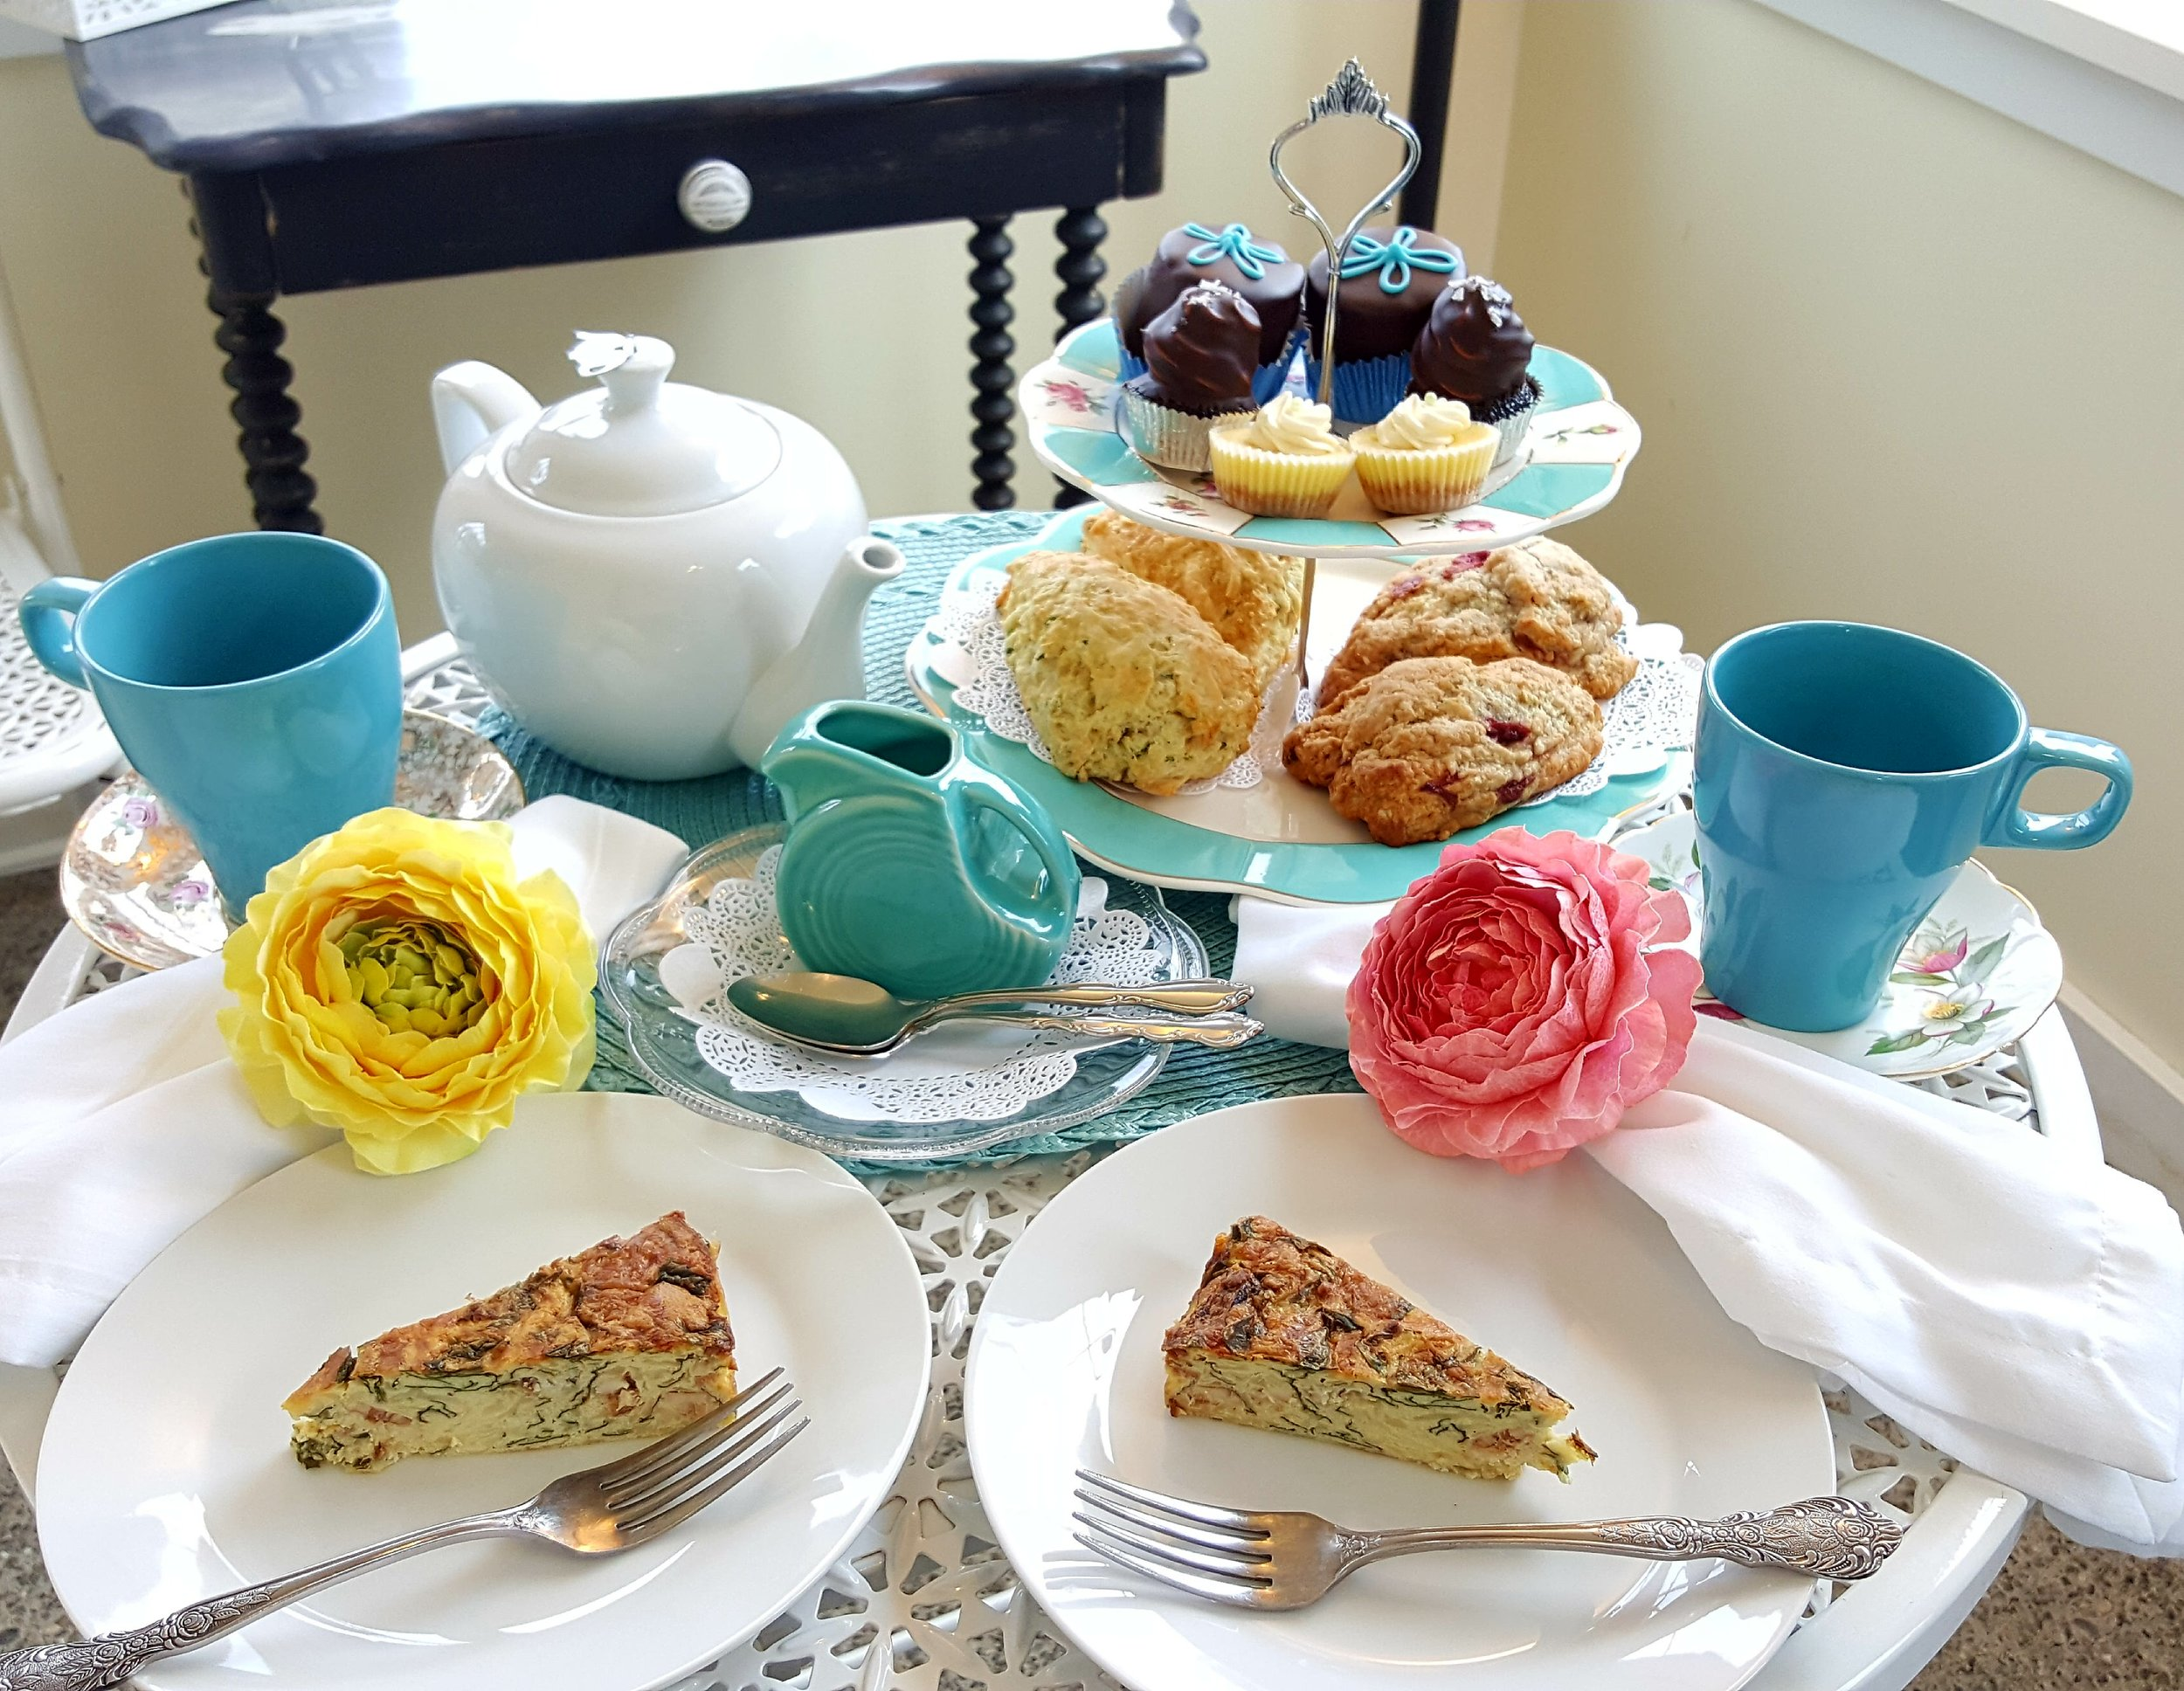 Cottage Tea Menu - Quiche*Sweet Scone with house made Lemon Curd*Savory Scone*Assortment of Signature treats including our Sweet Blissand Unlimited Tea*Gluten Free available